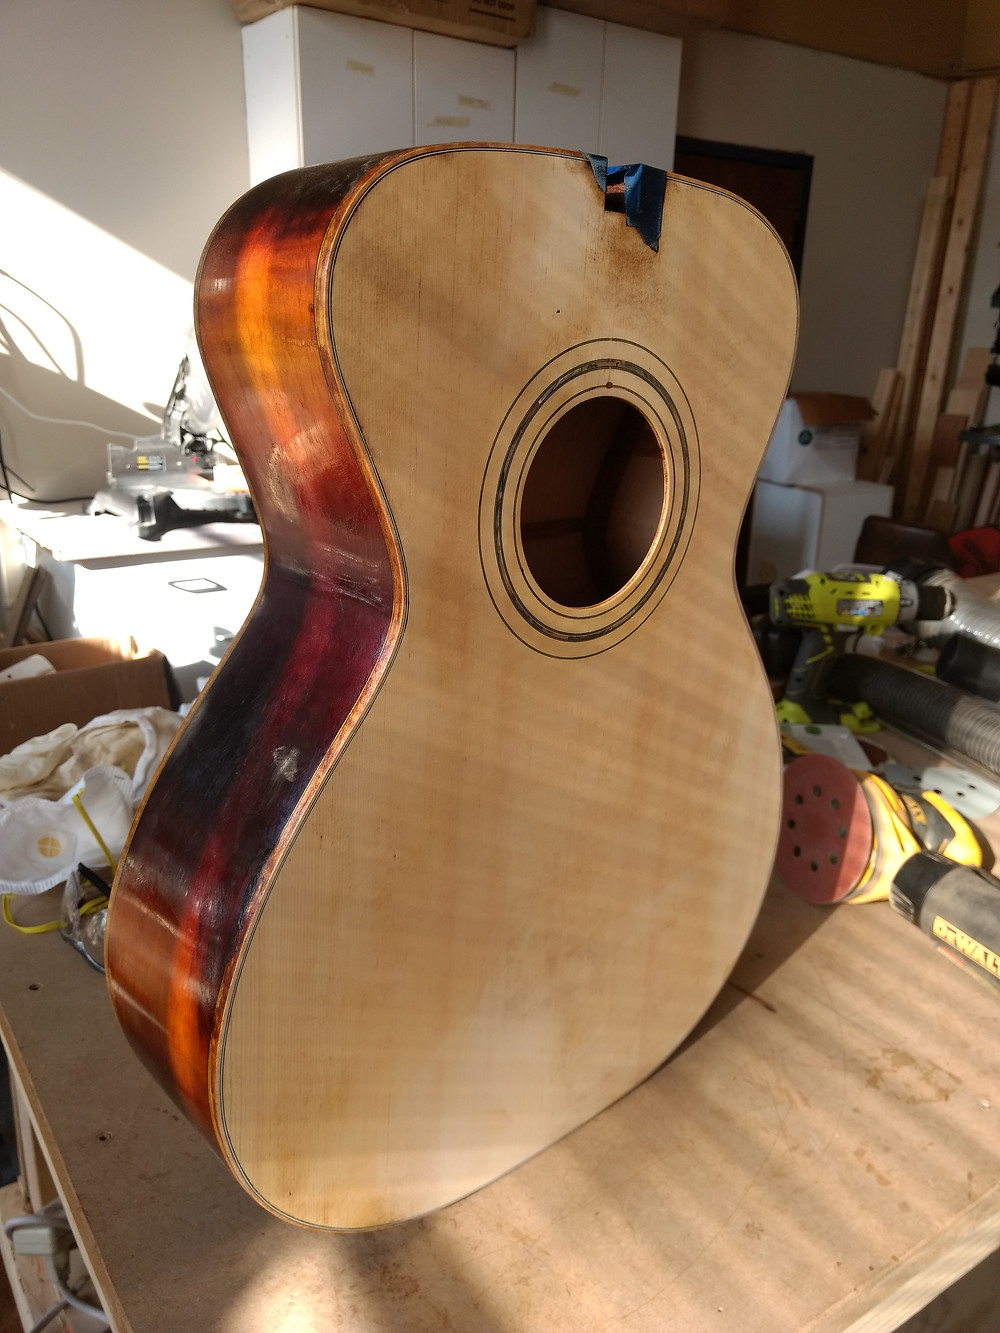 Top stripped with sides still in the burst finish.